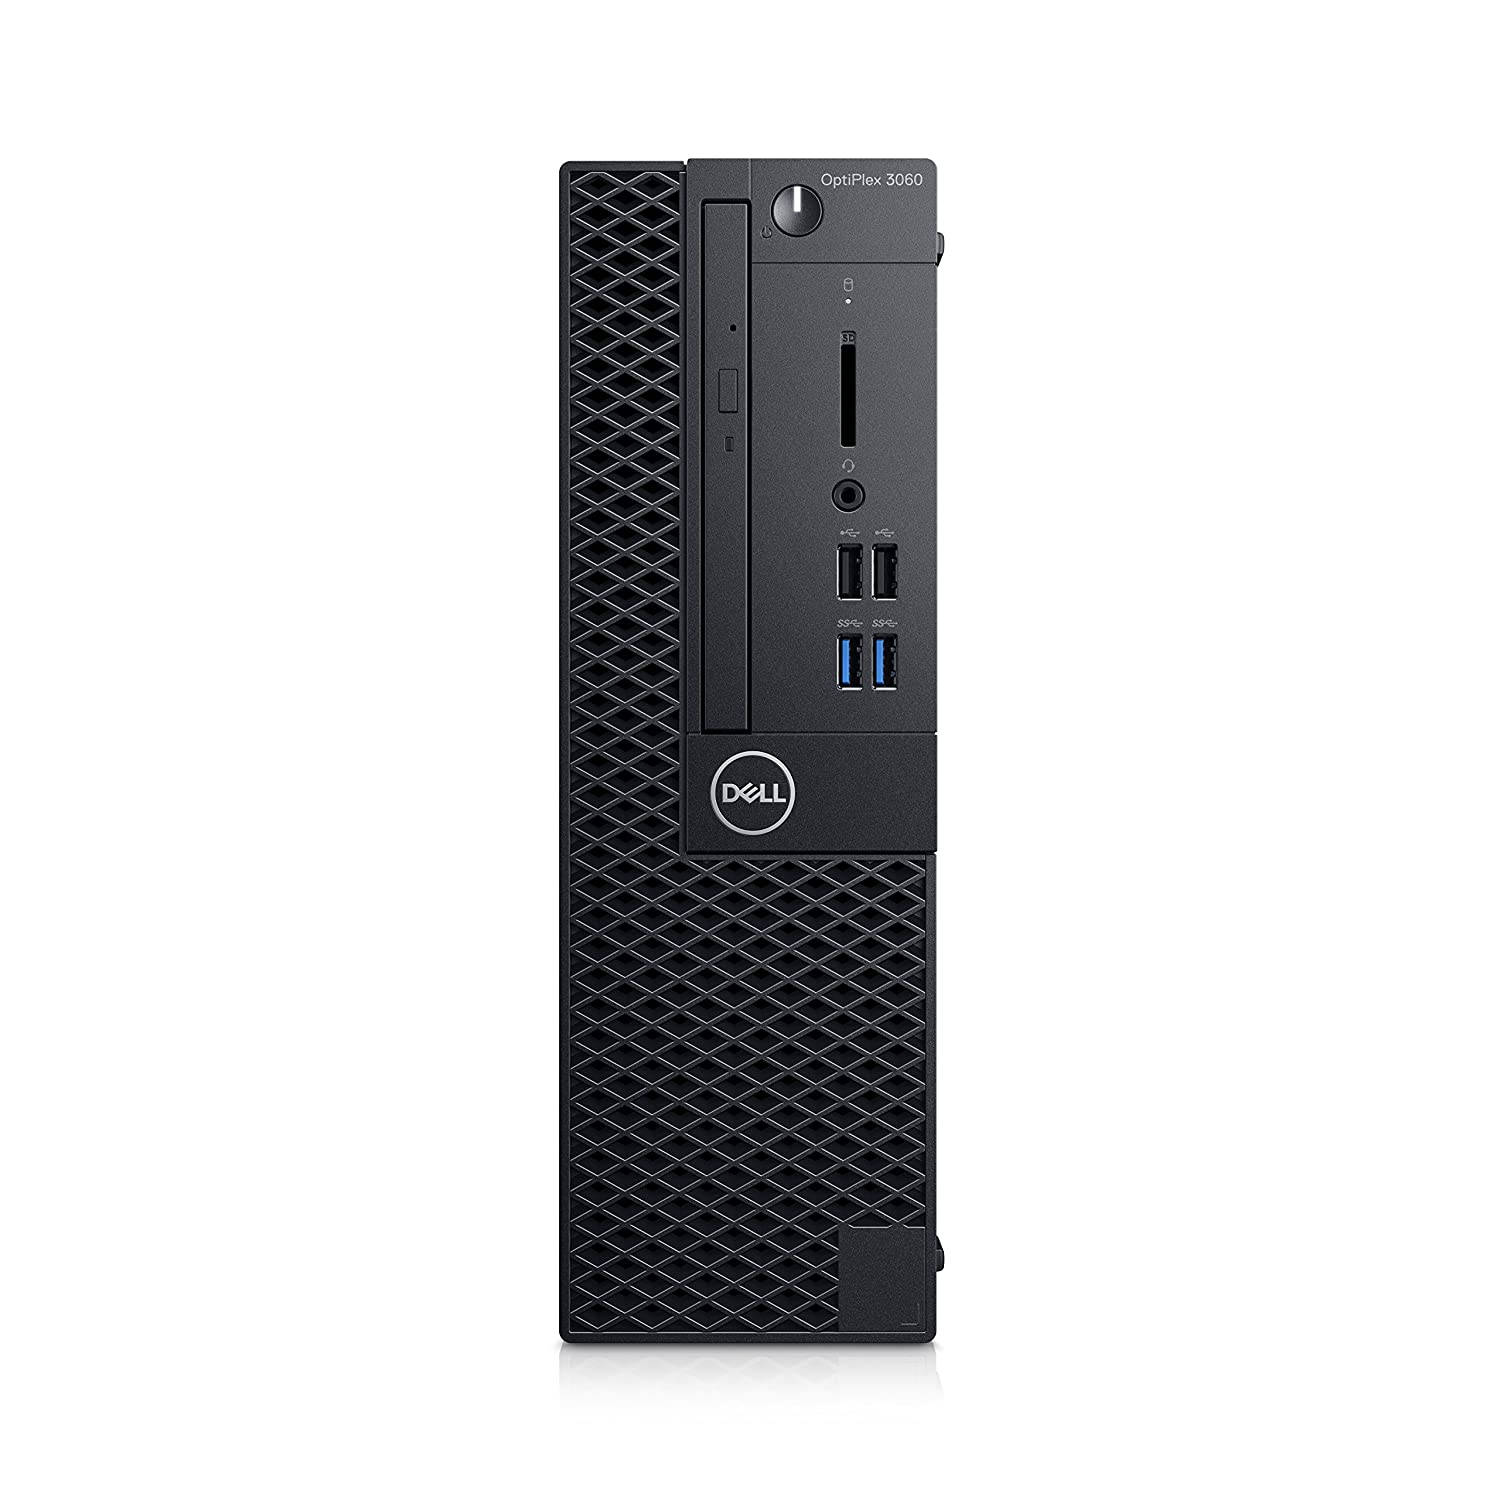 Dell OptiPlex 3060 3.6GHz i3-8100 SFF 8ª generación de procesadores Intel® Core i3 Negro PC OptiPlex 3060, 3,6 GHz, 8ª generación de procesadores Intel® Core i3, 8 GB, 256 GB, DVD±